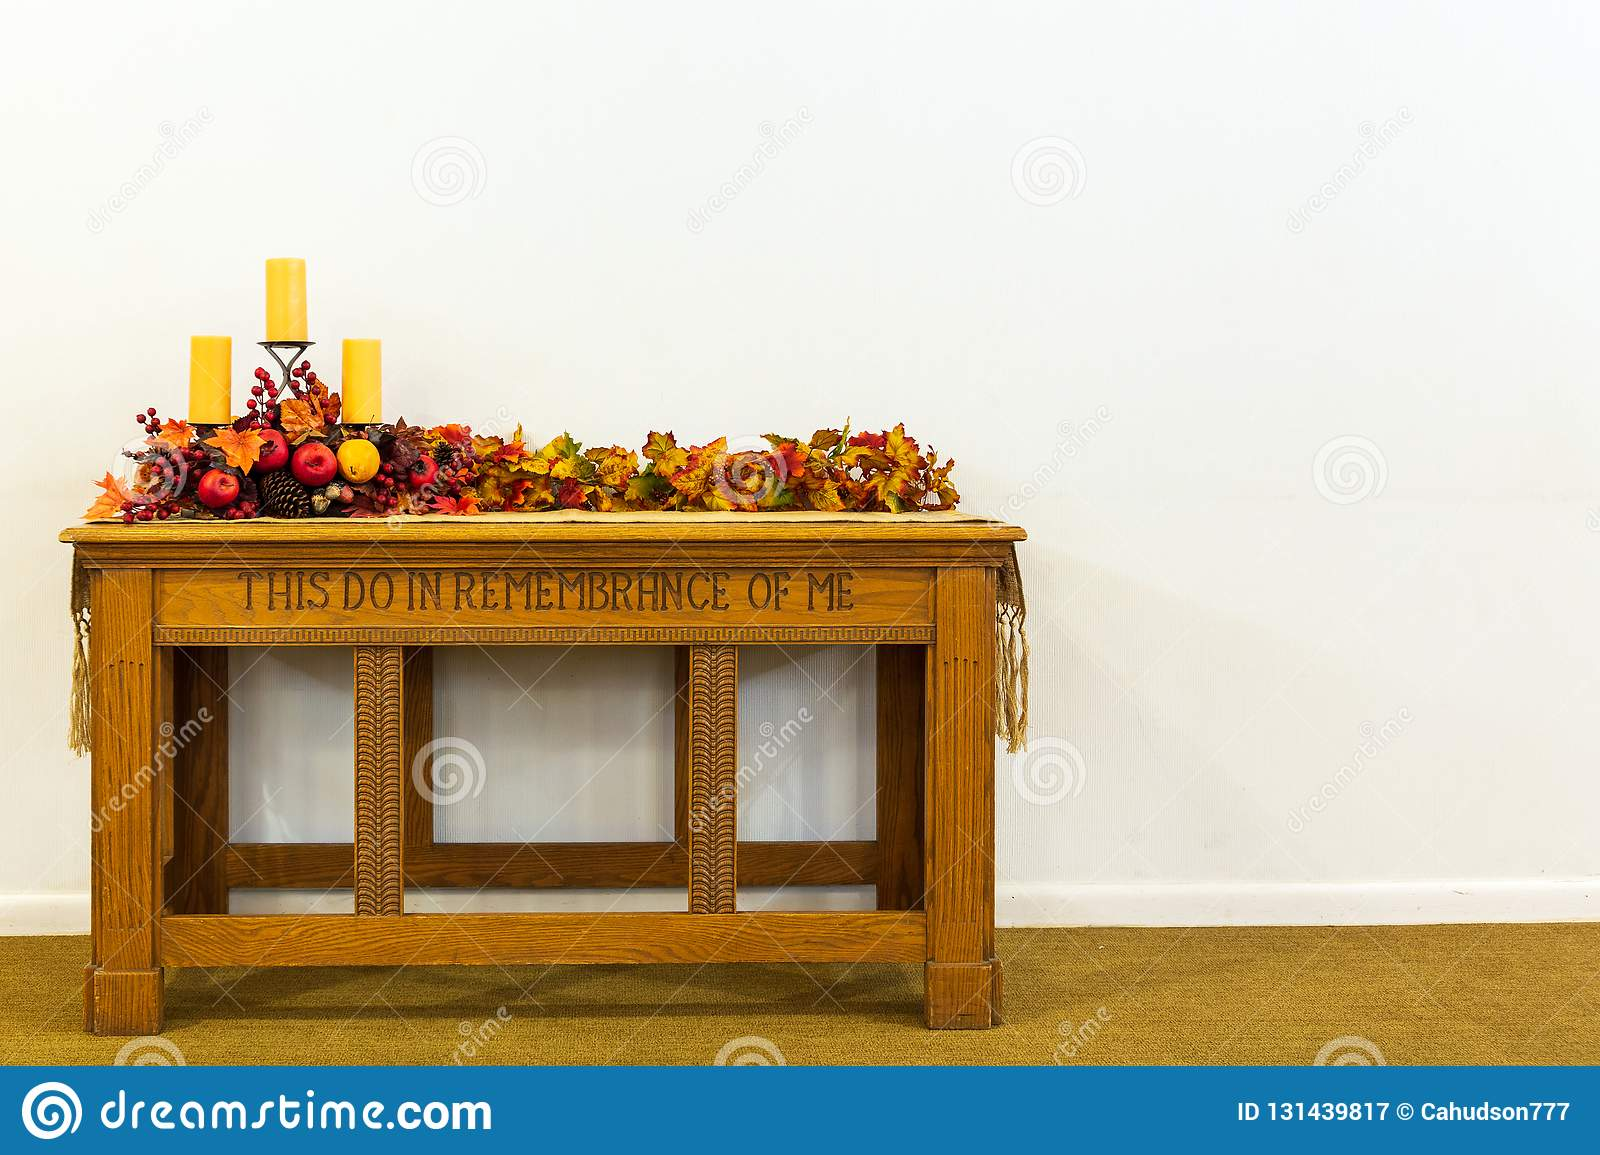 Communion table decorated with candles and colored leaves on a isolated background